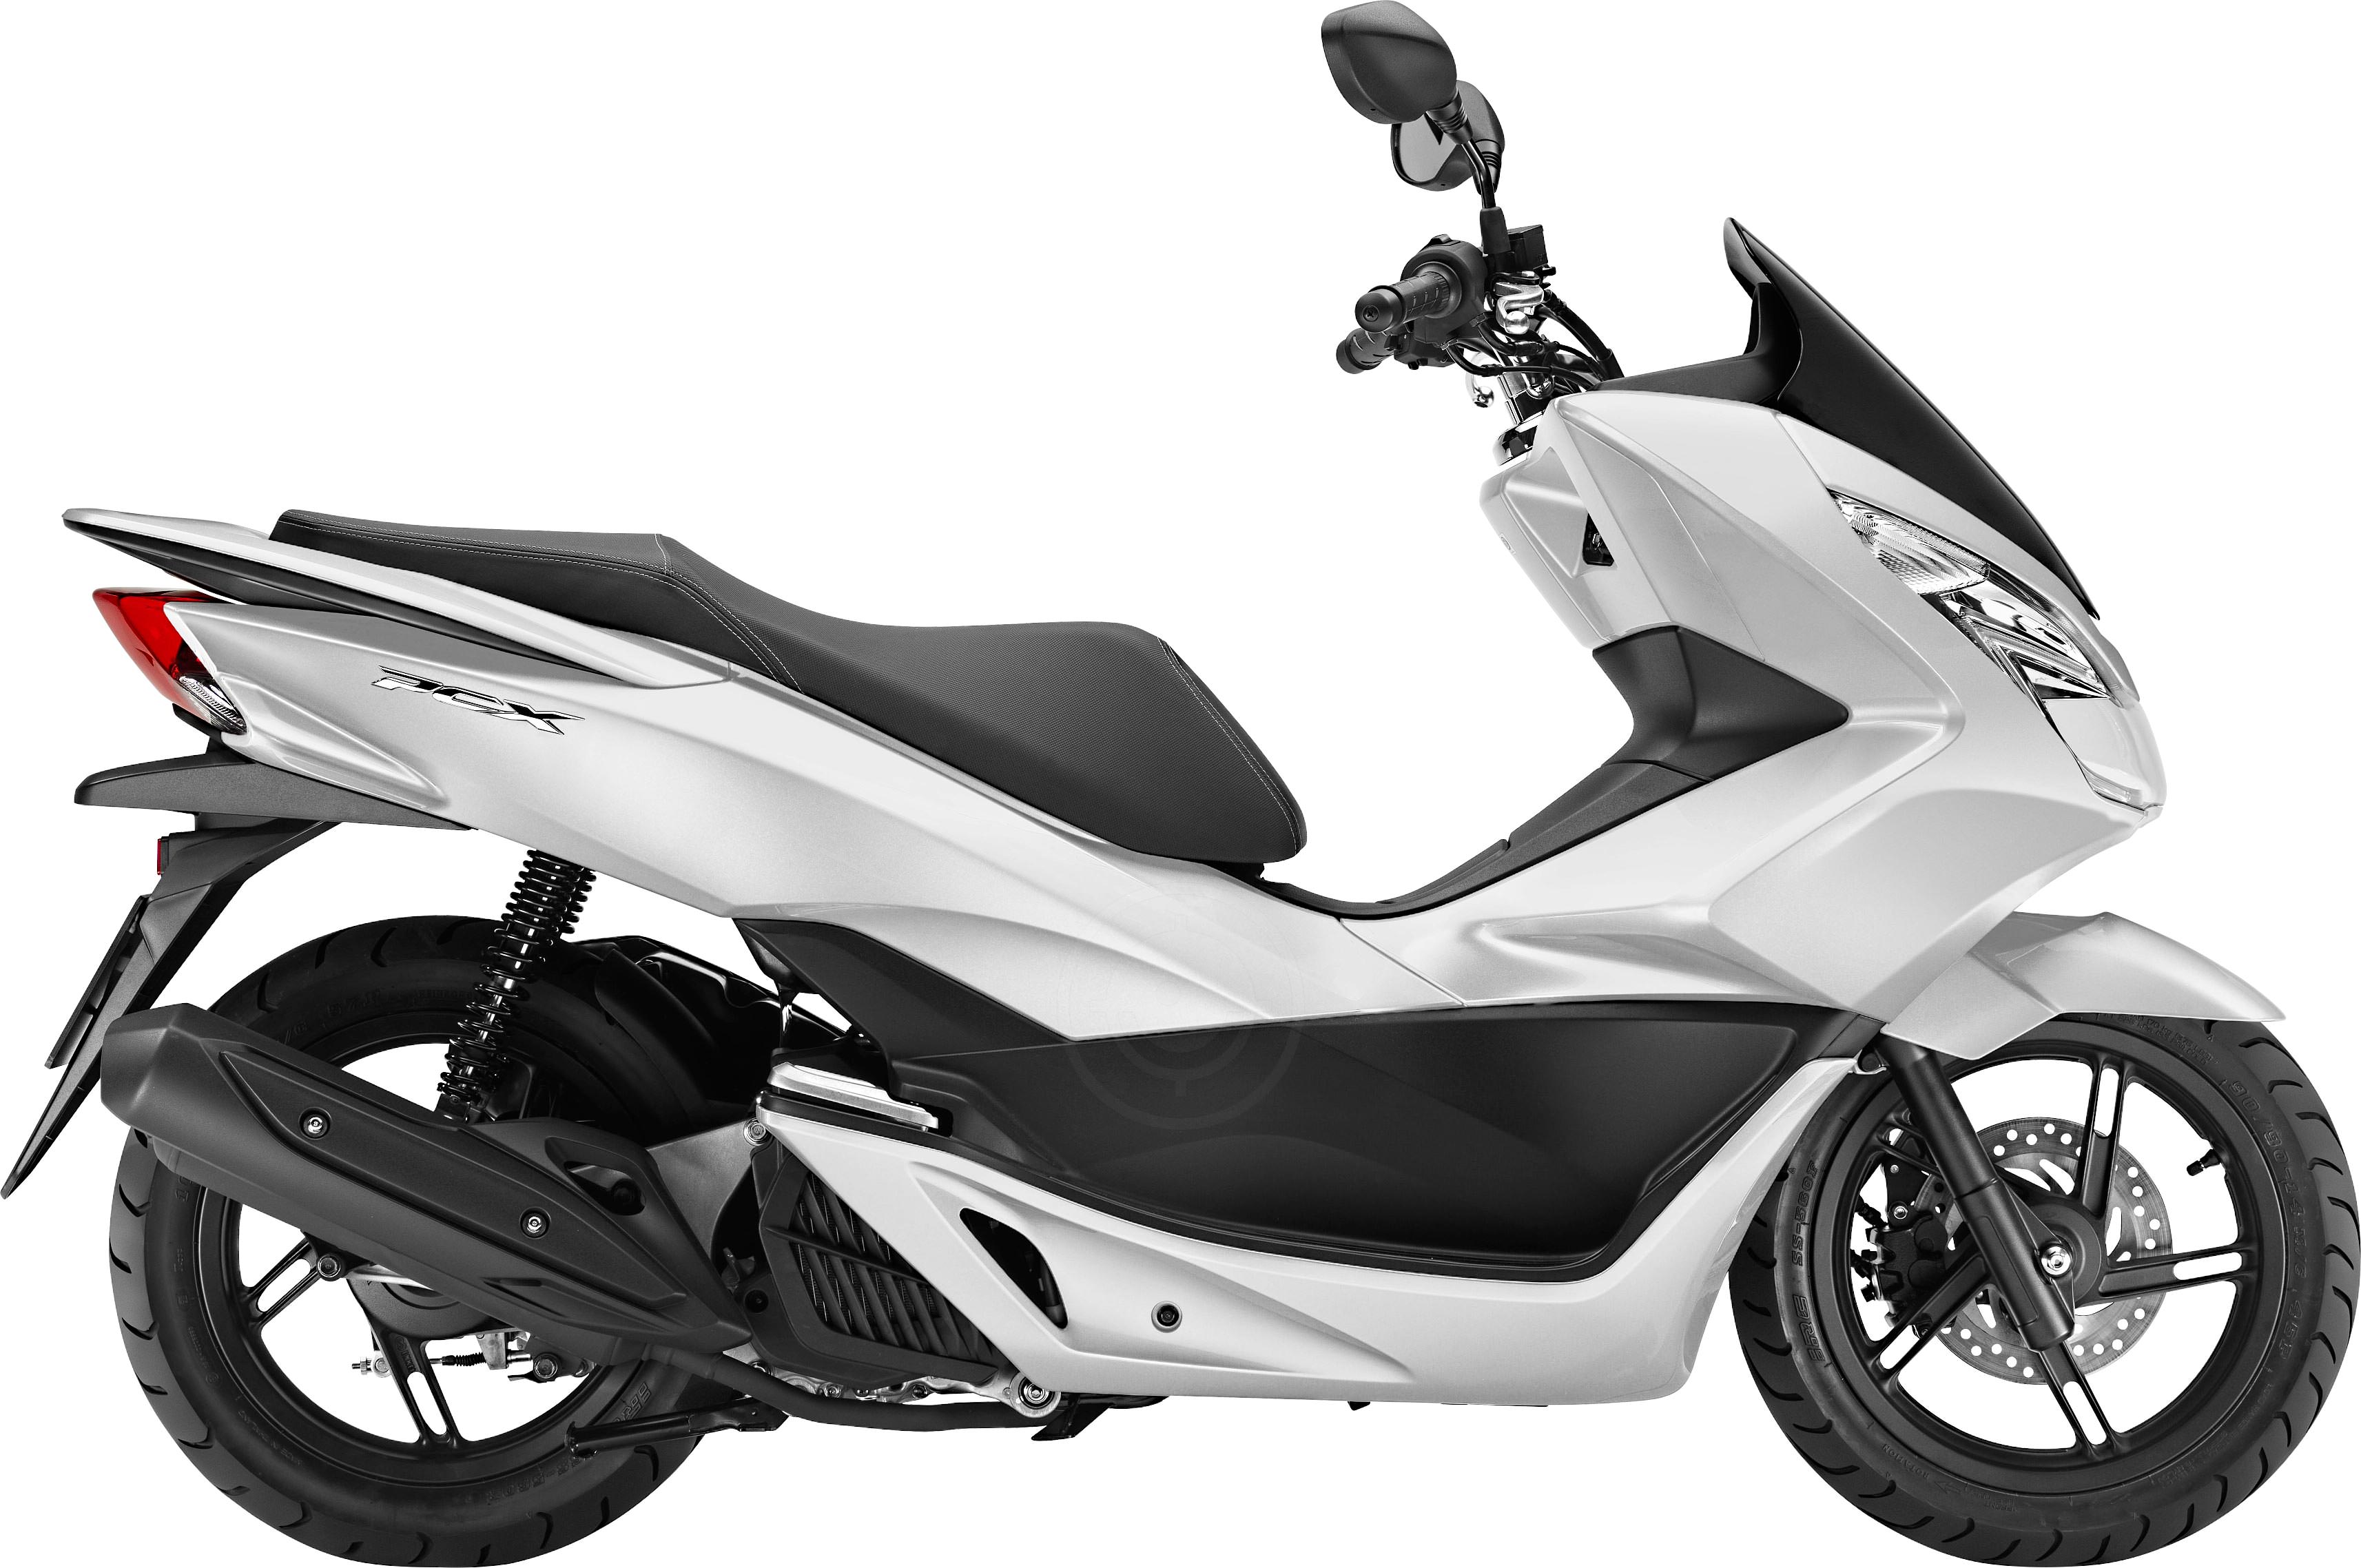 honda pcx 125 honda pcx125 moto motorcycle motos. Black Bedroom Furniture Sets. Home Design Ideas